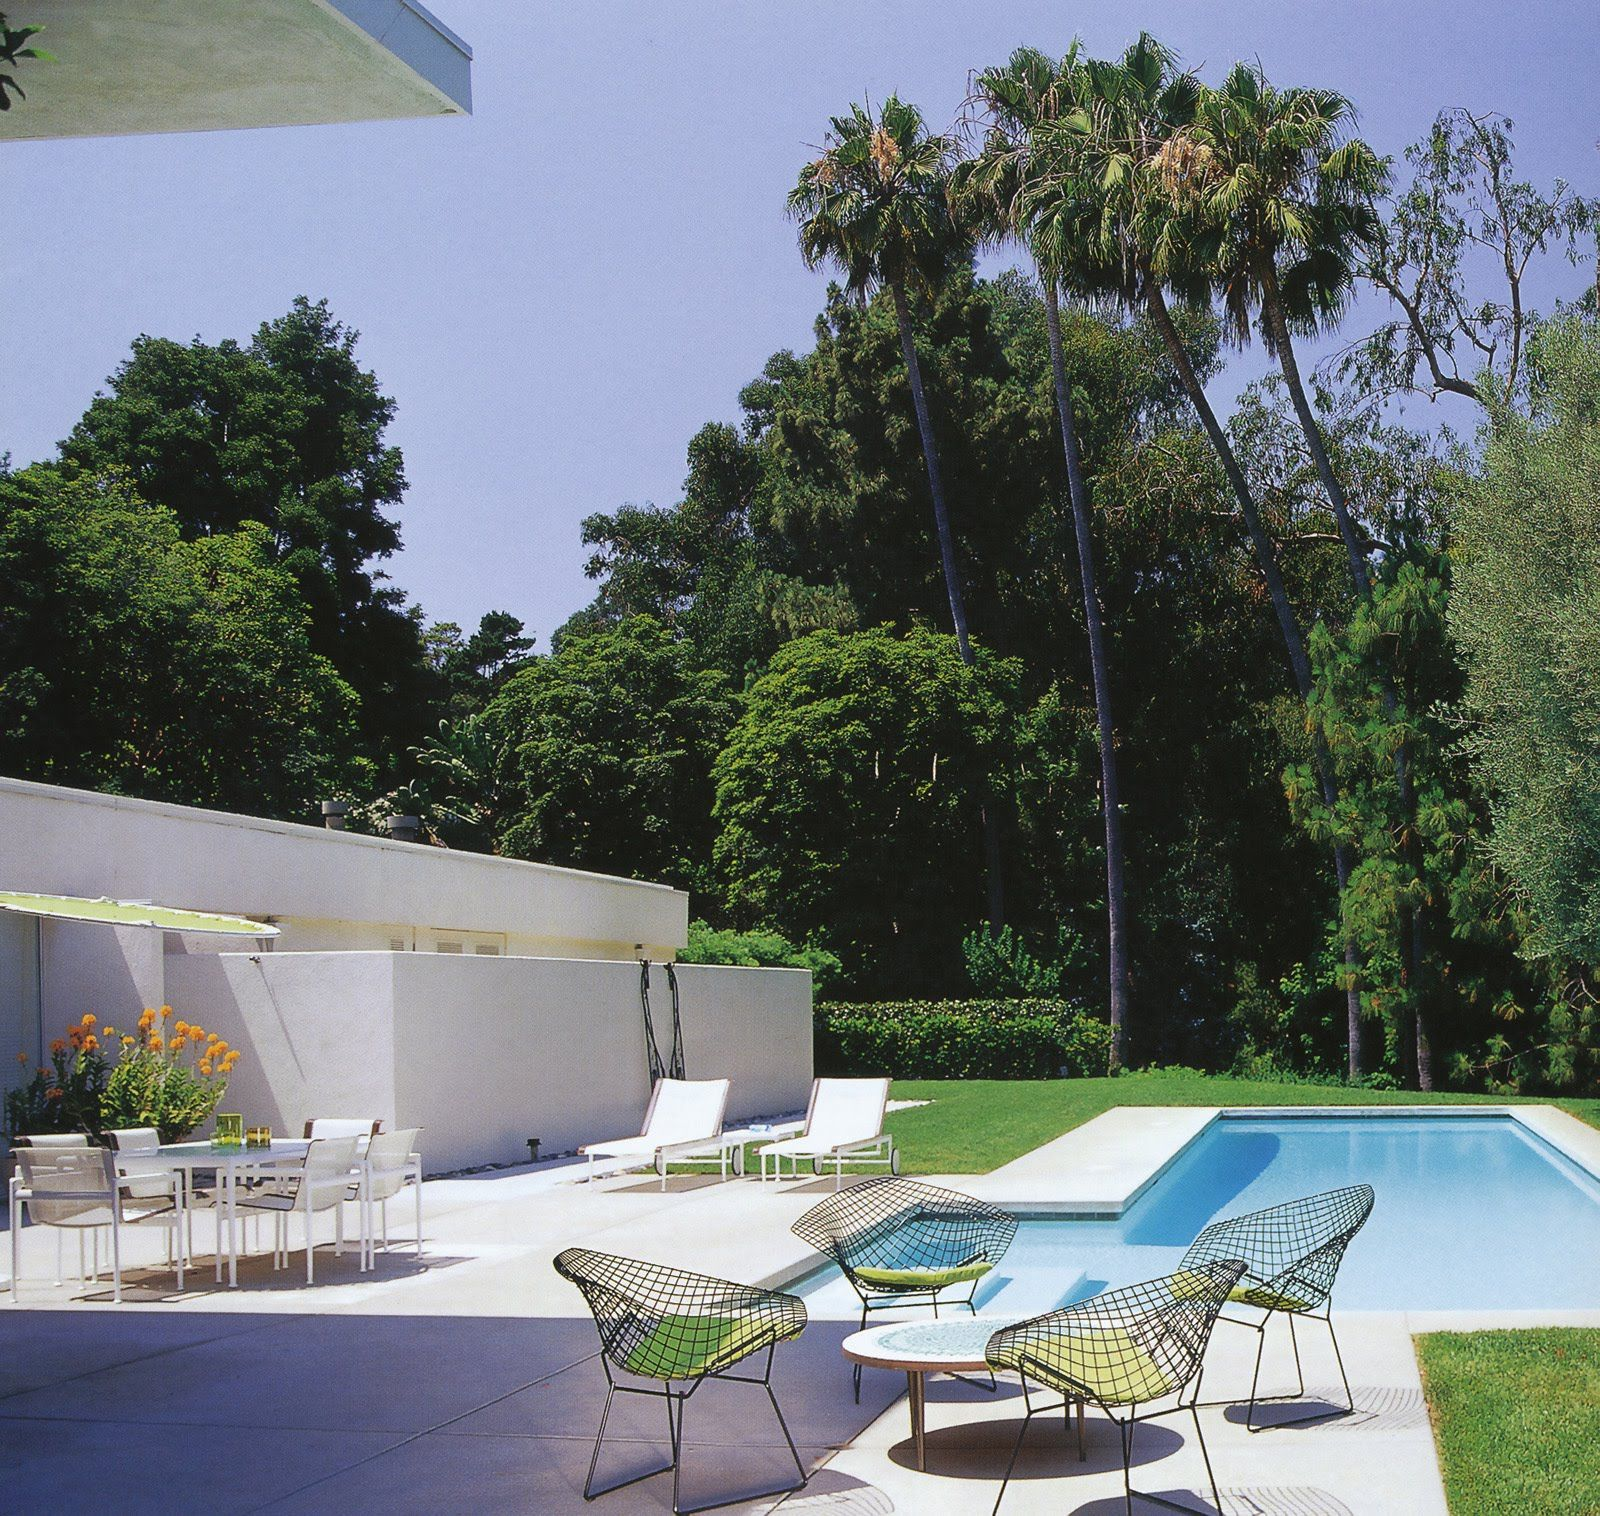 1000 images about pool on pinterest modern pools concrete pool and pools